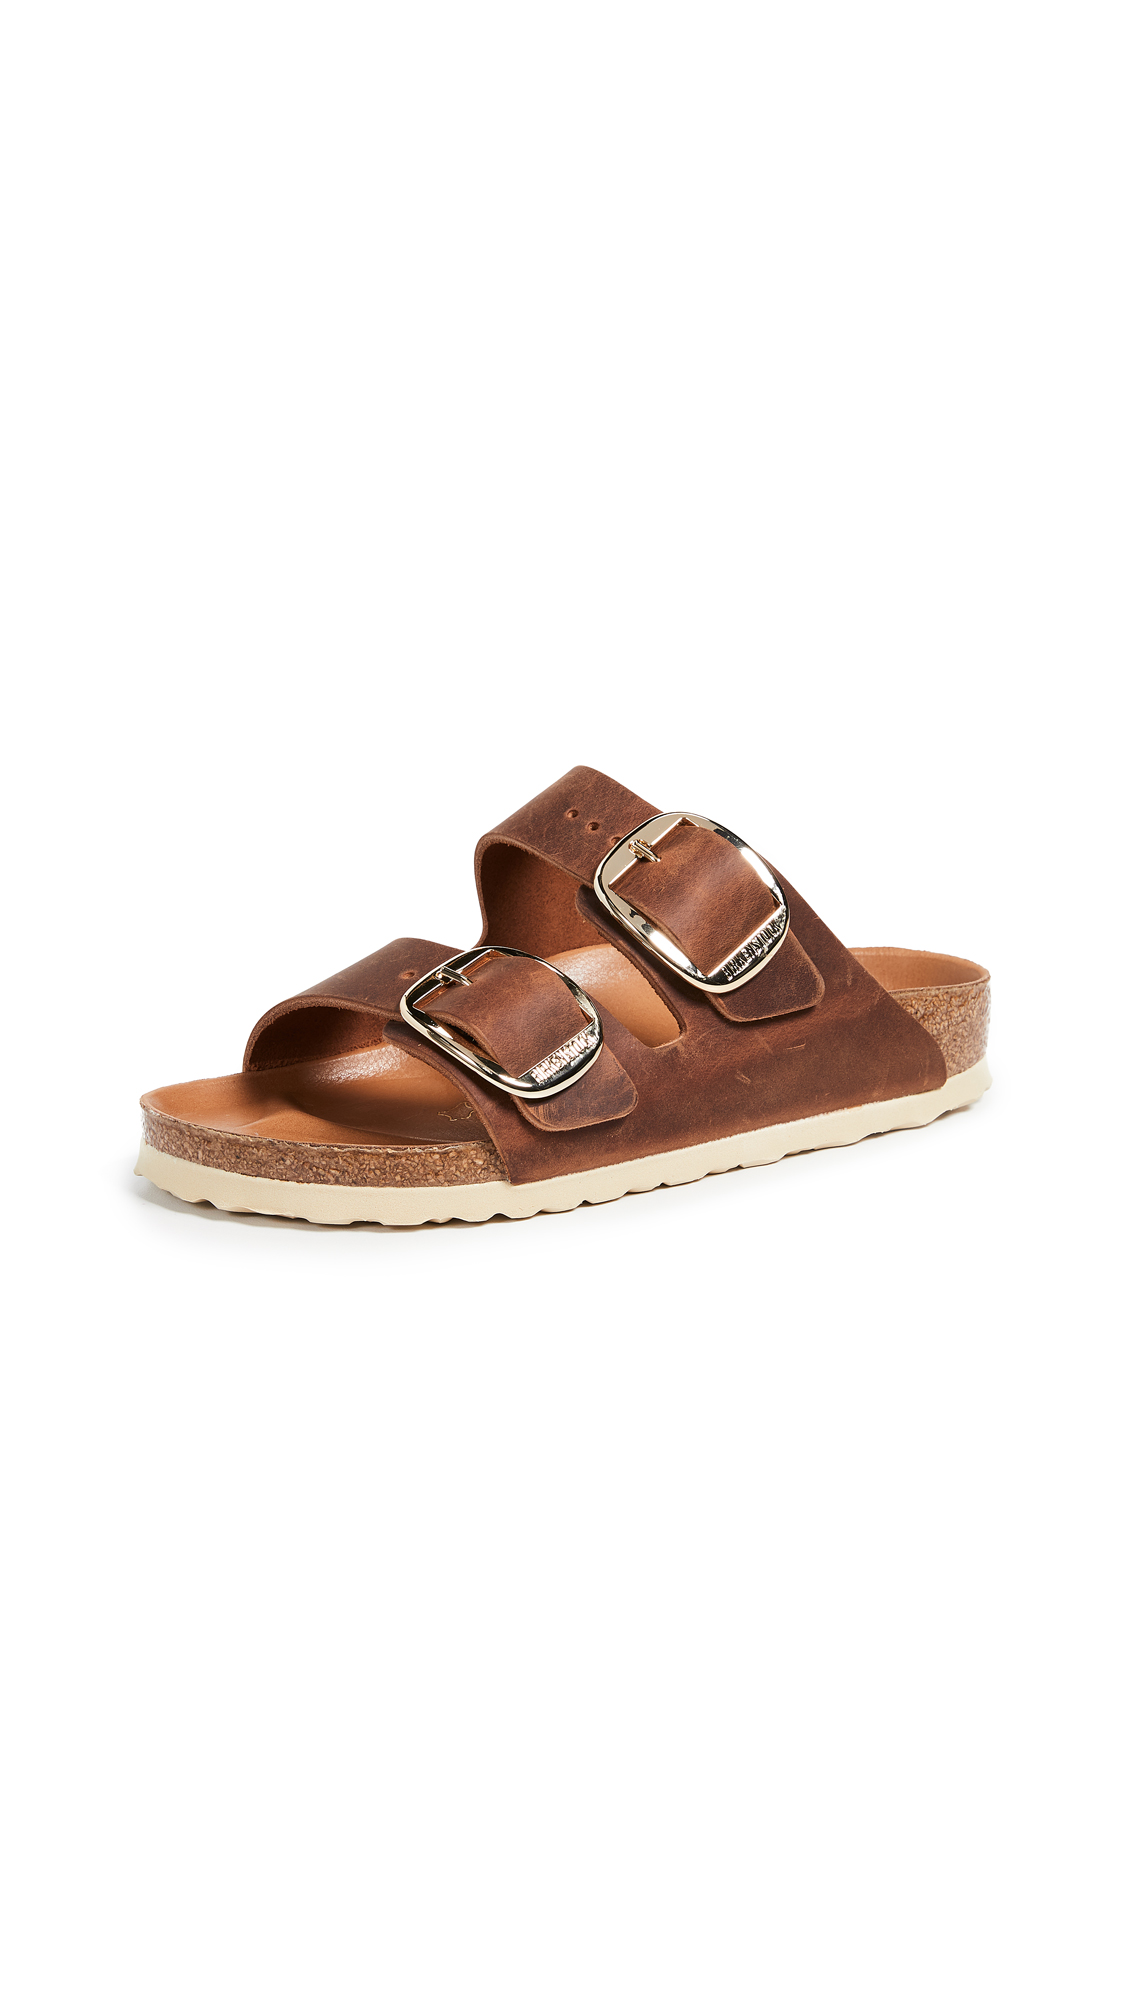 Birkenstock Arizona Big Buckle Sandals - Antique Cognac